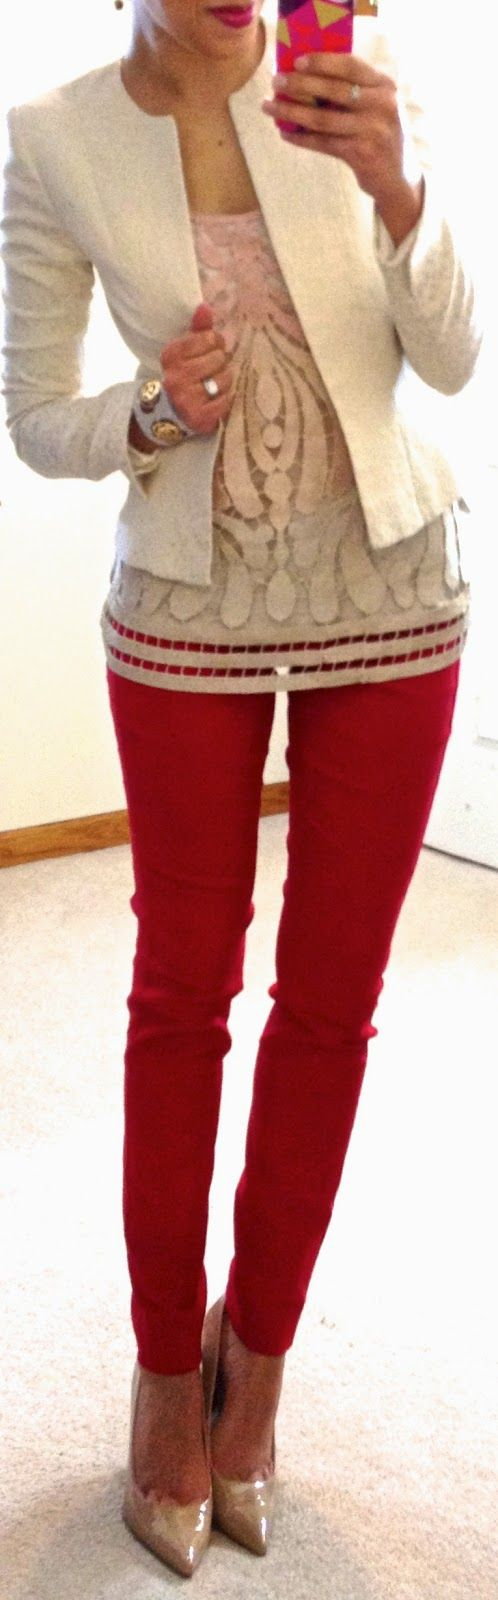 Red pants at work. Get a white blazer and patterned shirt!